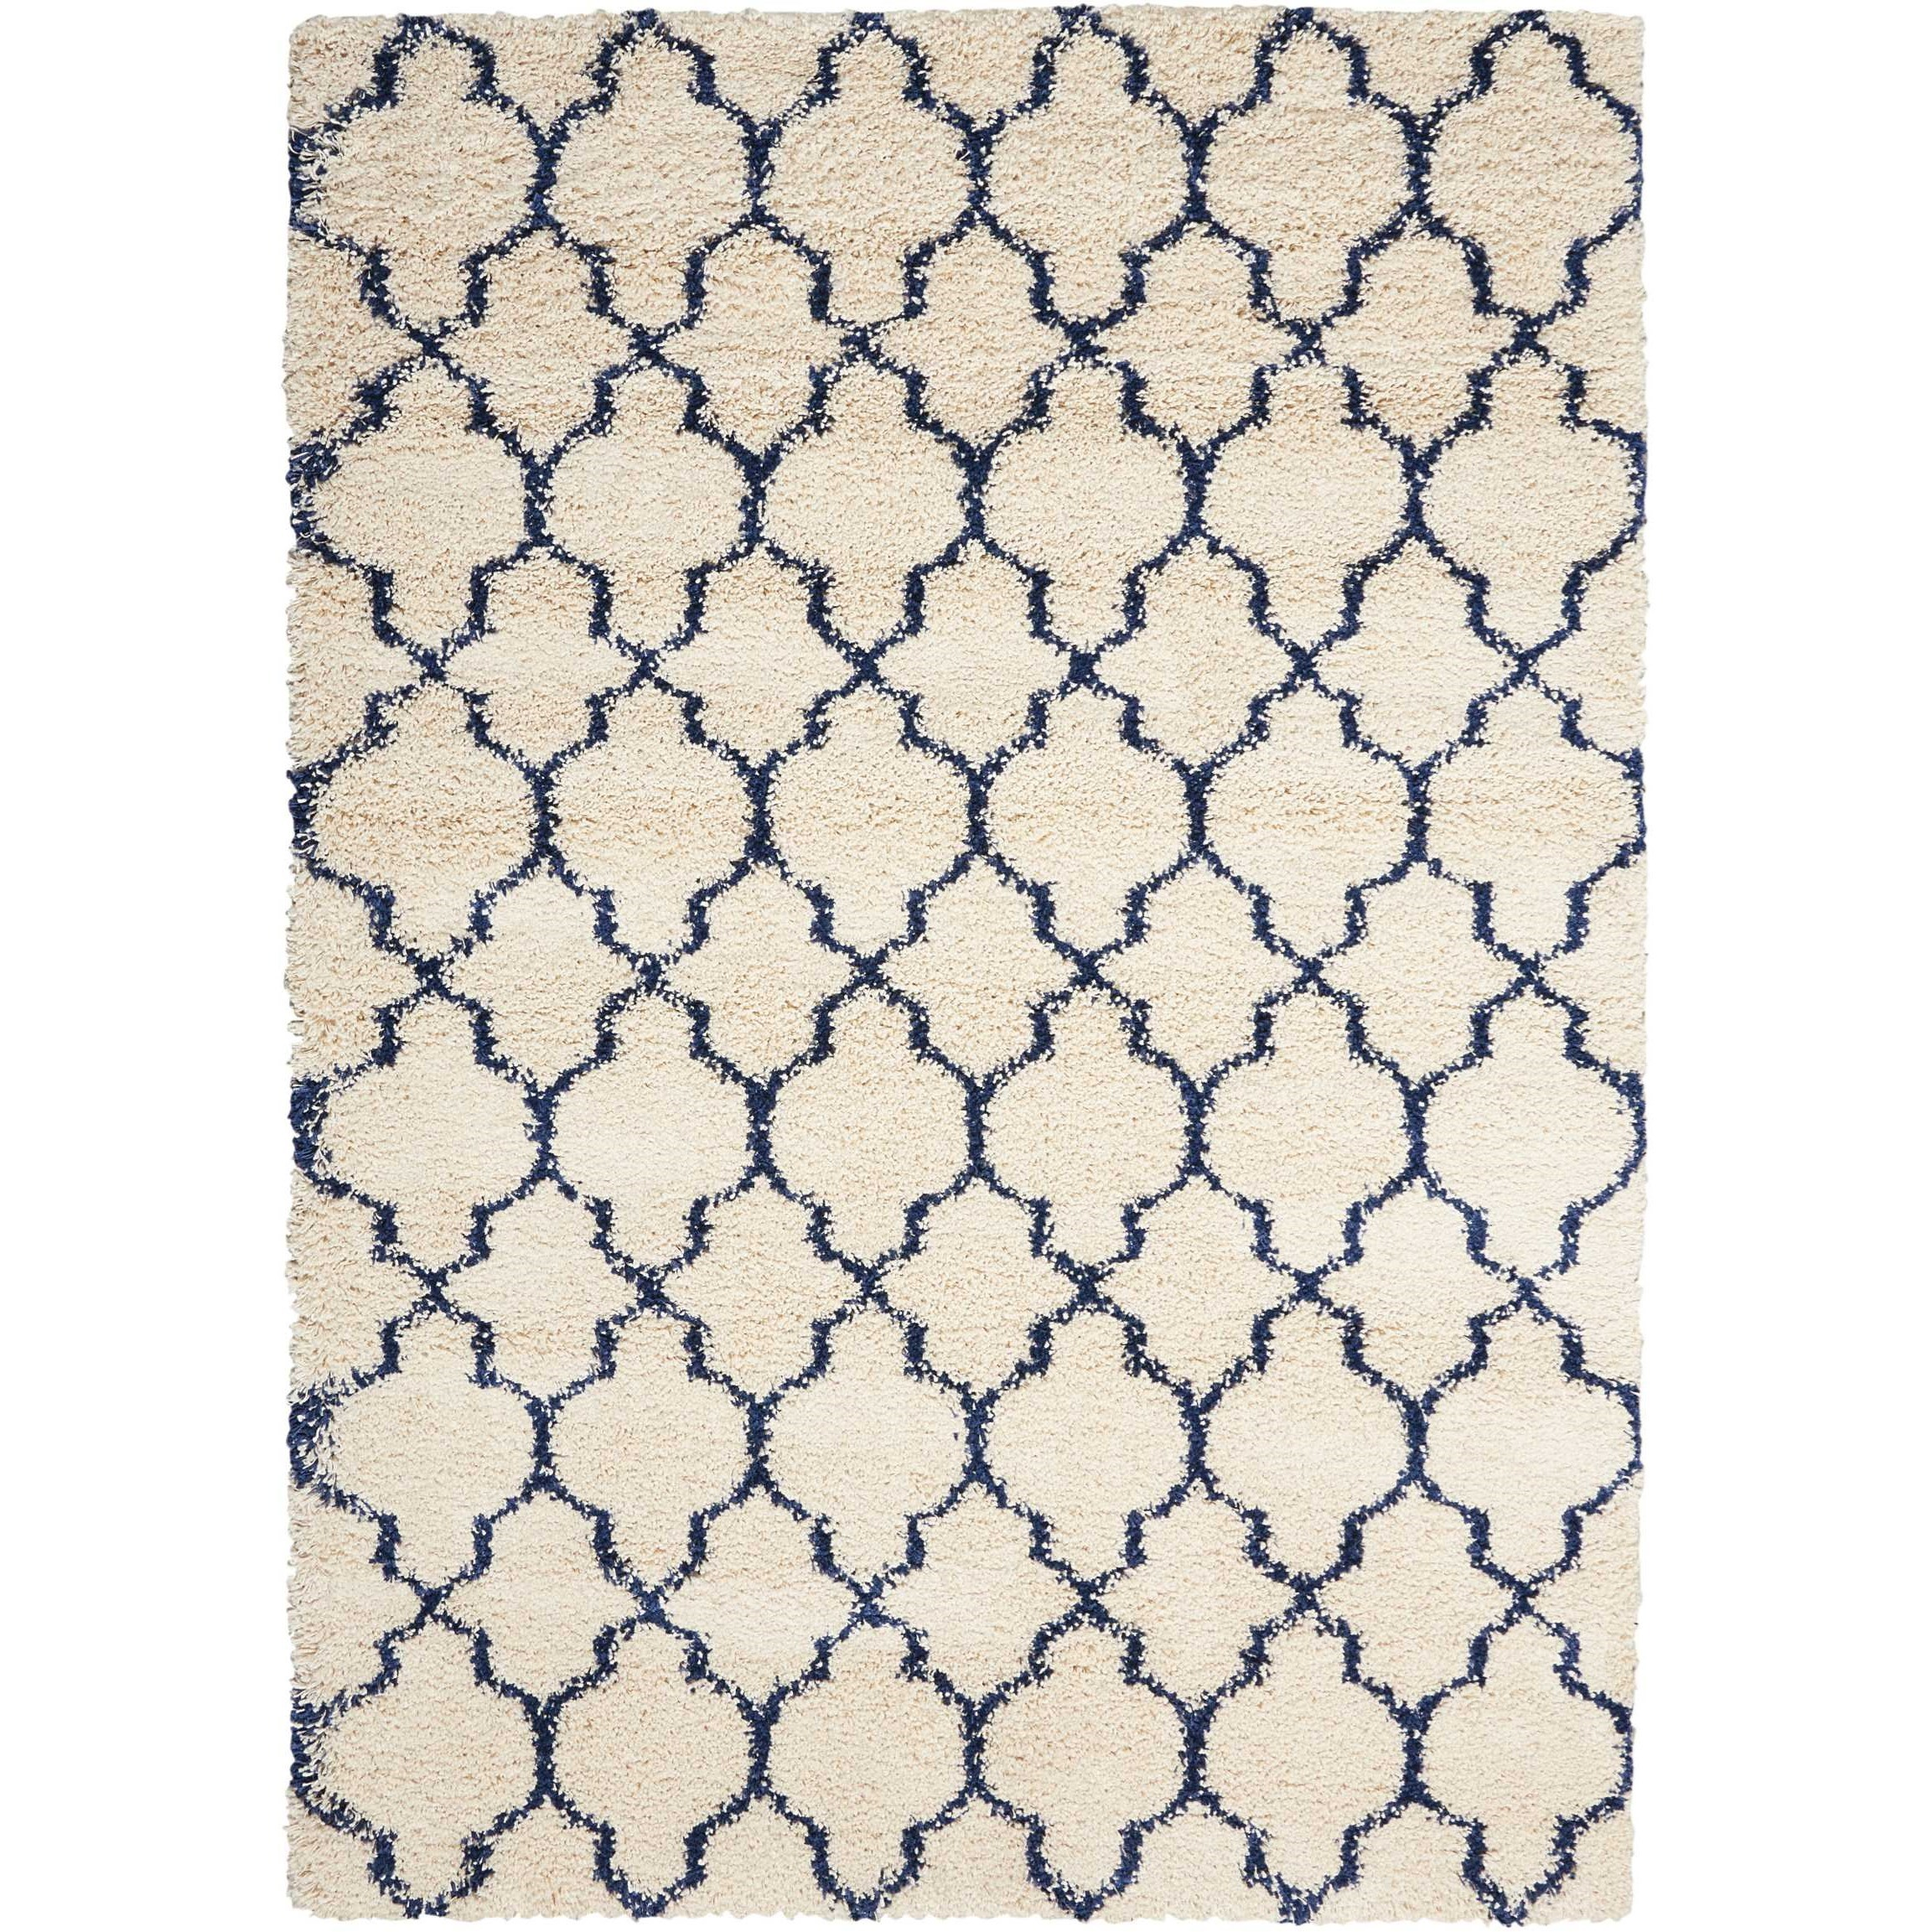 Amore Amore AMOR2 Blue and Ivory 3'x5' Area Rug by Nourison at Home Collections Furniture